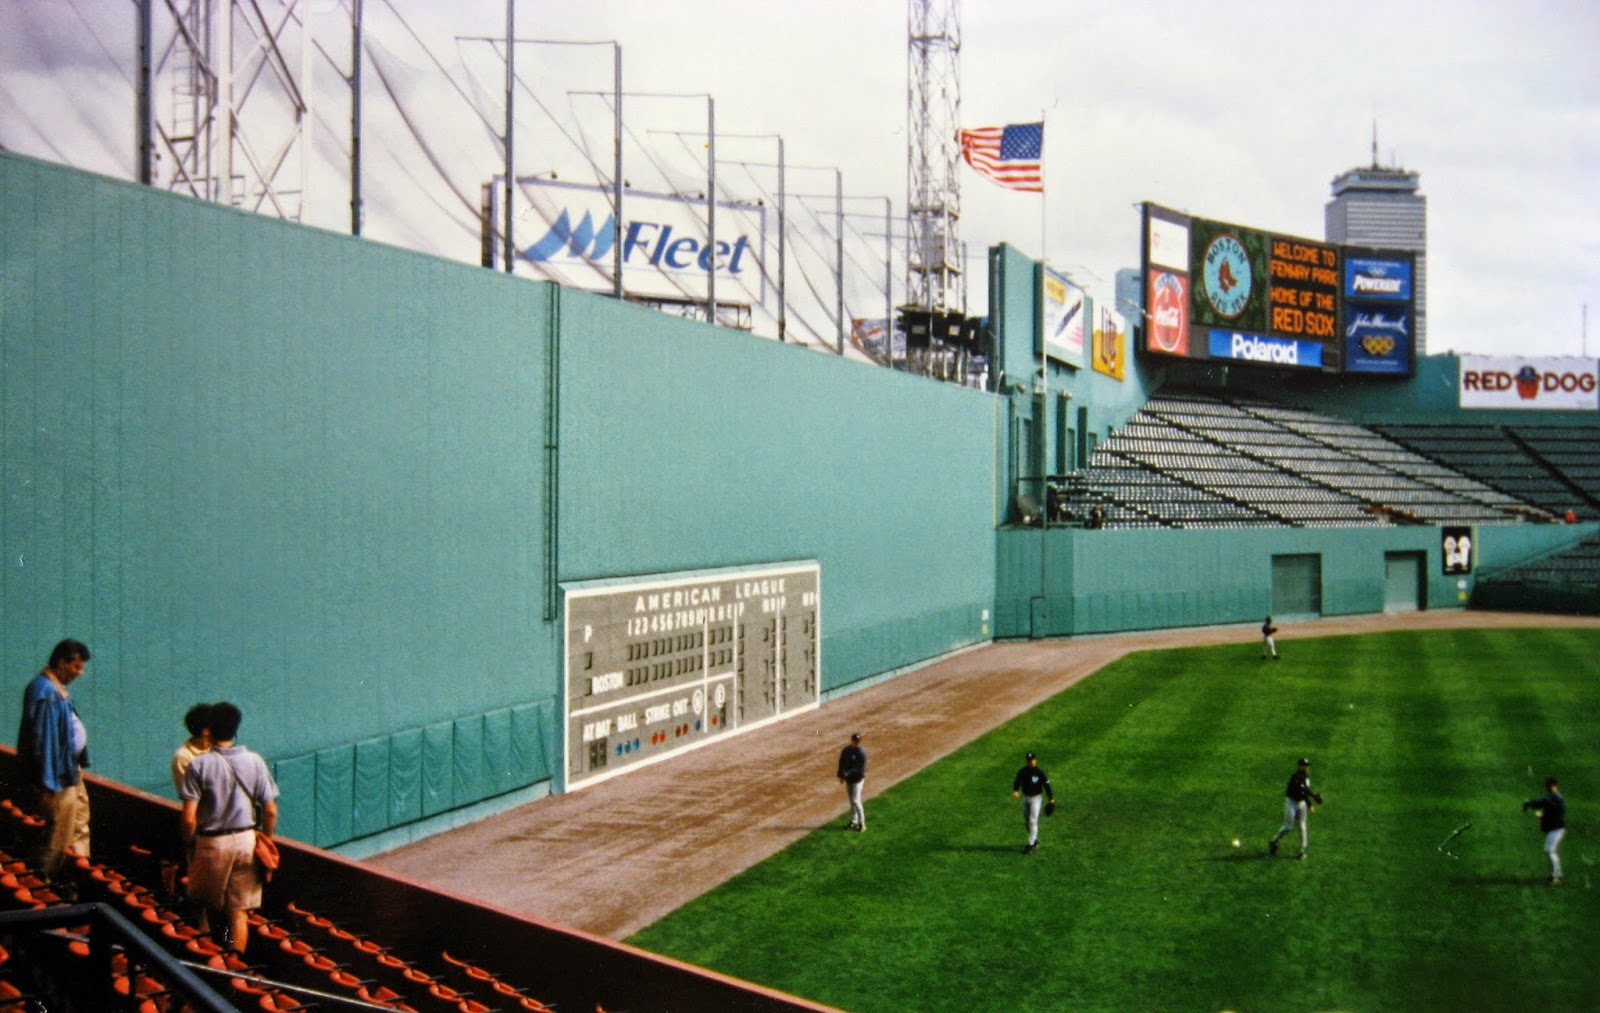 Fenway Park 1996... The Big Green Monster left field wall